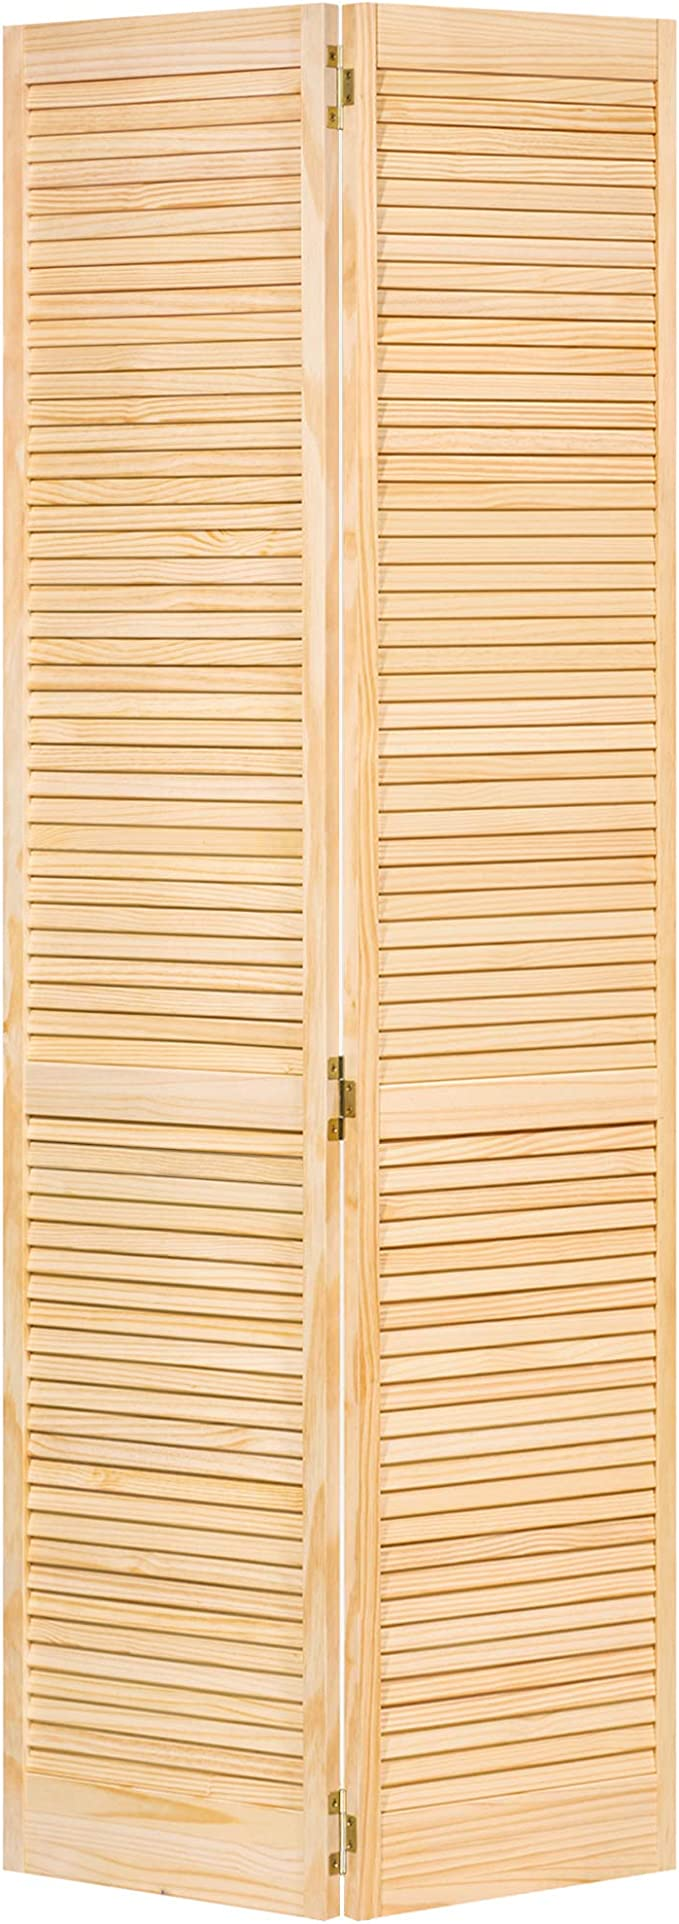 80x32 Kimberly Bay Traditional Louver-Louver White Closet Door Bi-fold